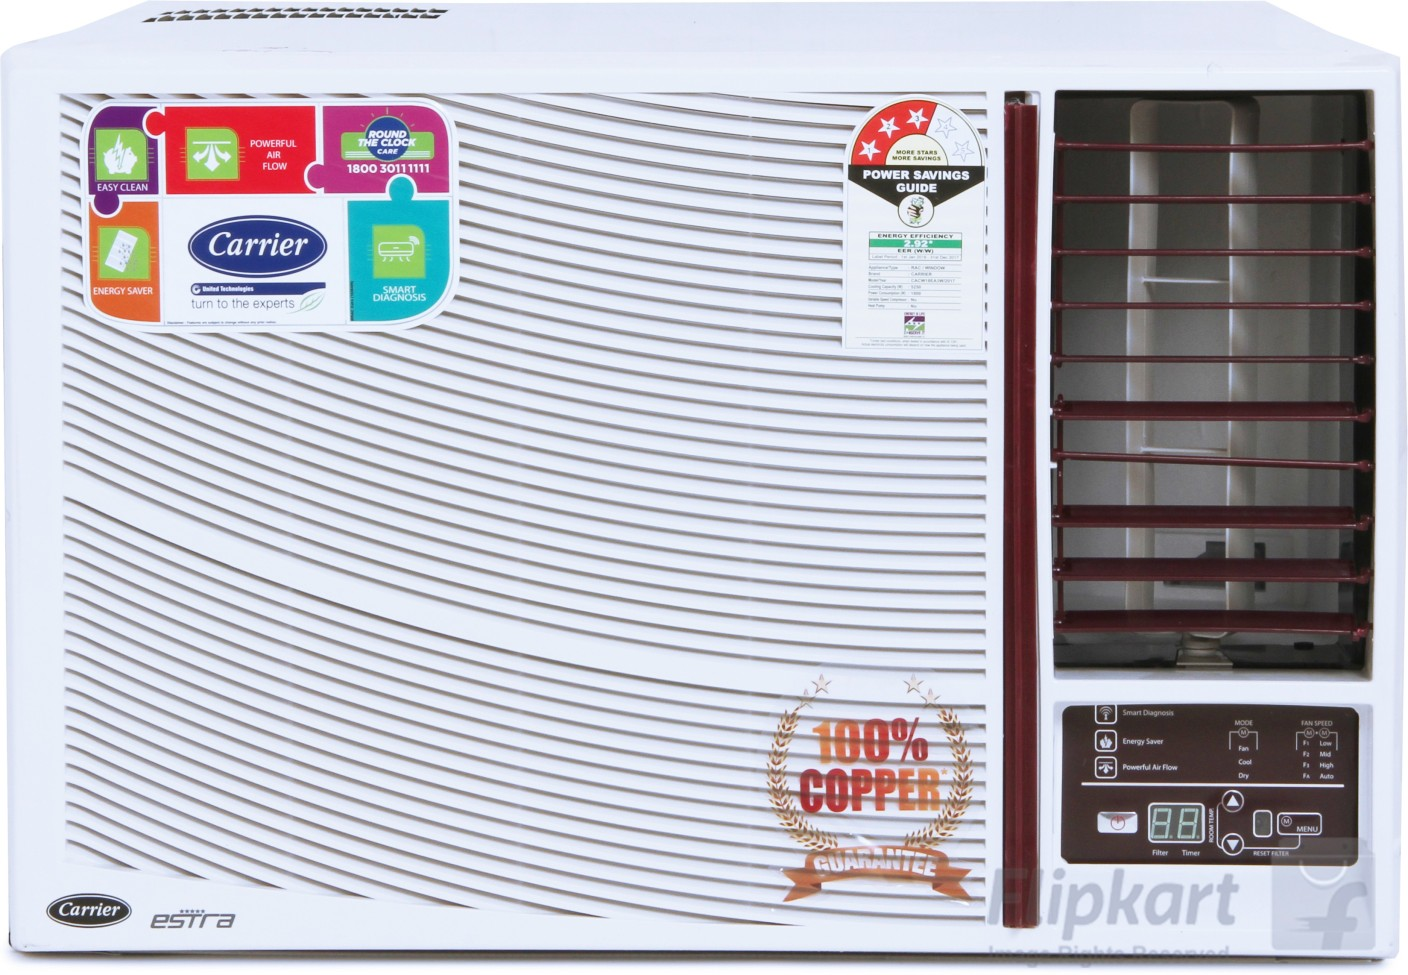 carrier window air conditioner. Carrier 1.5 Ton 3 Star Window AC - White. ADD TO CART Air Conditioner I